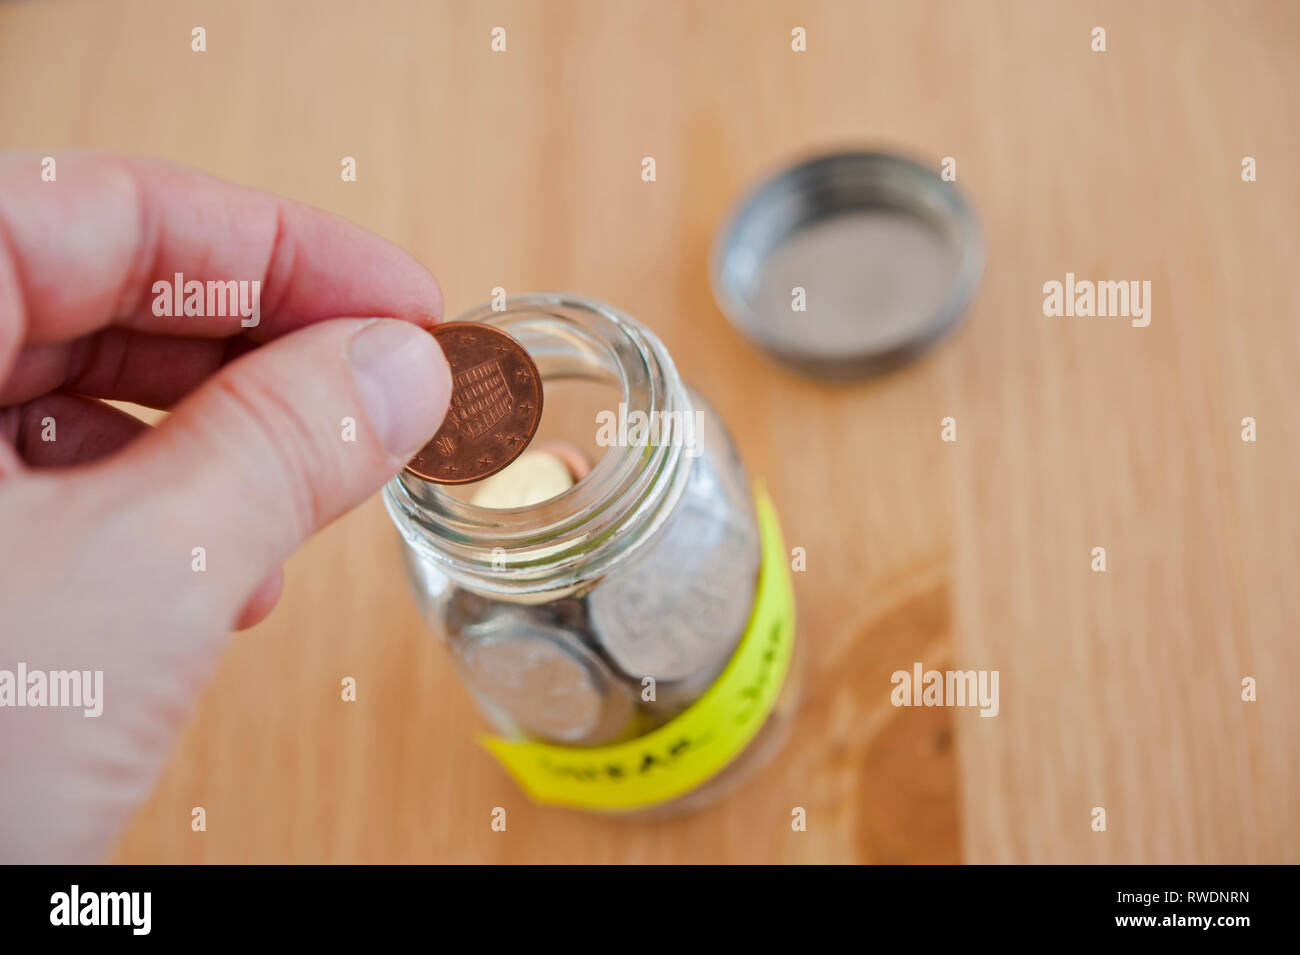 hand putting a coin into a swear jar - Stock Image